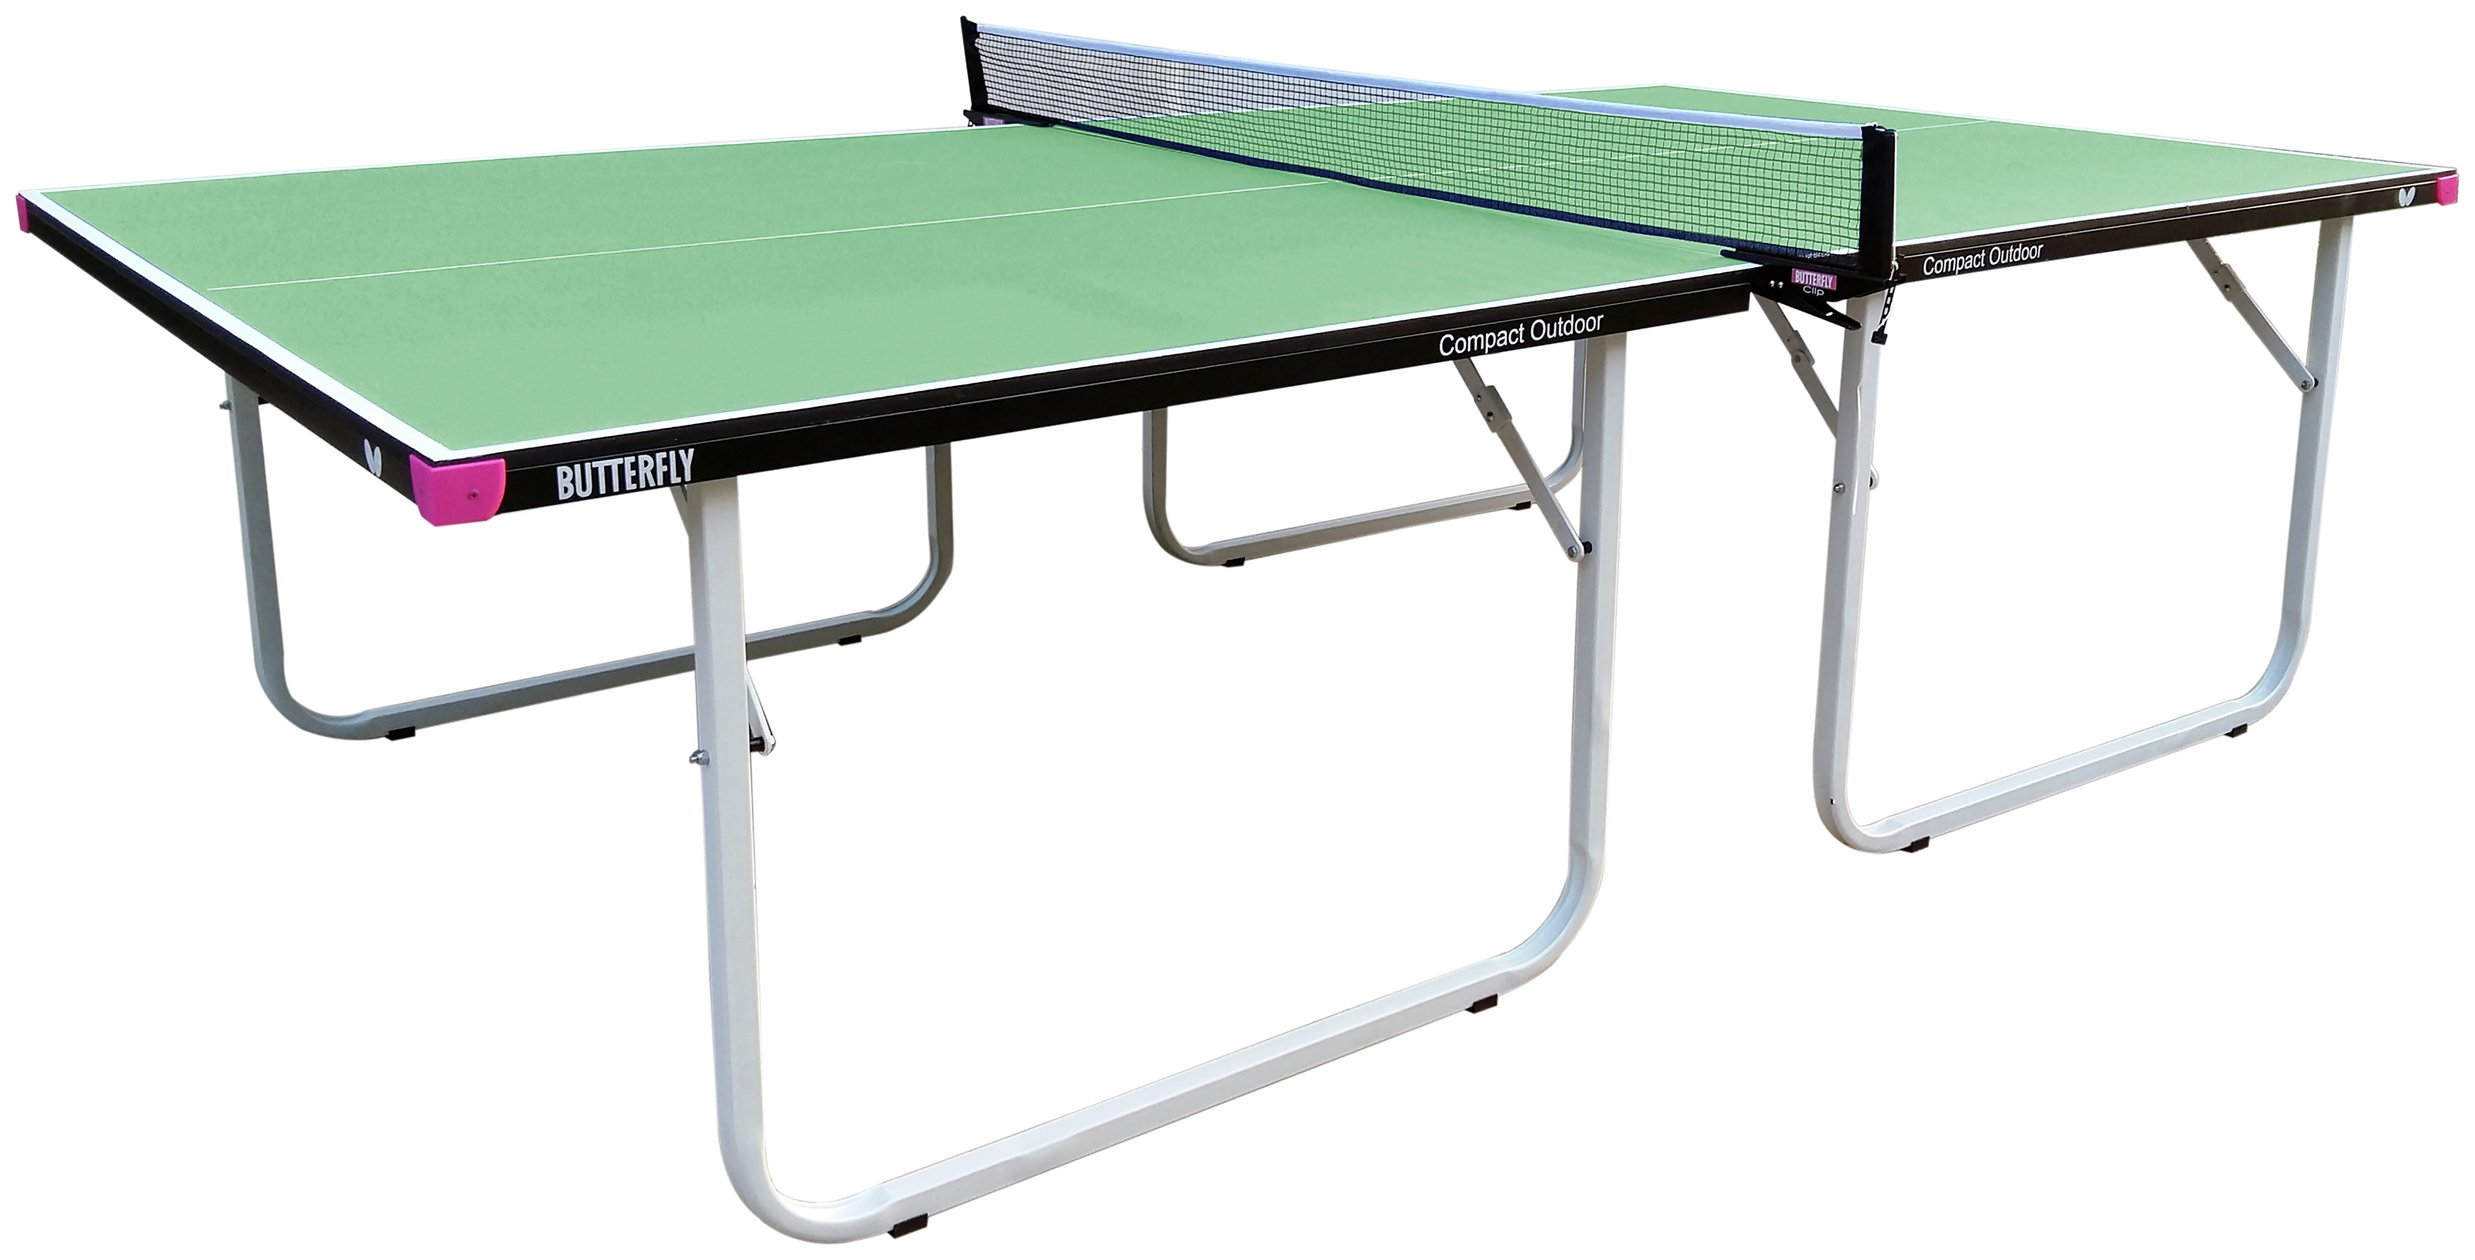 Image of Butterfly Compact Outdoor Green Table Tennis Table